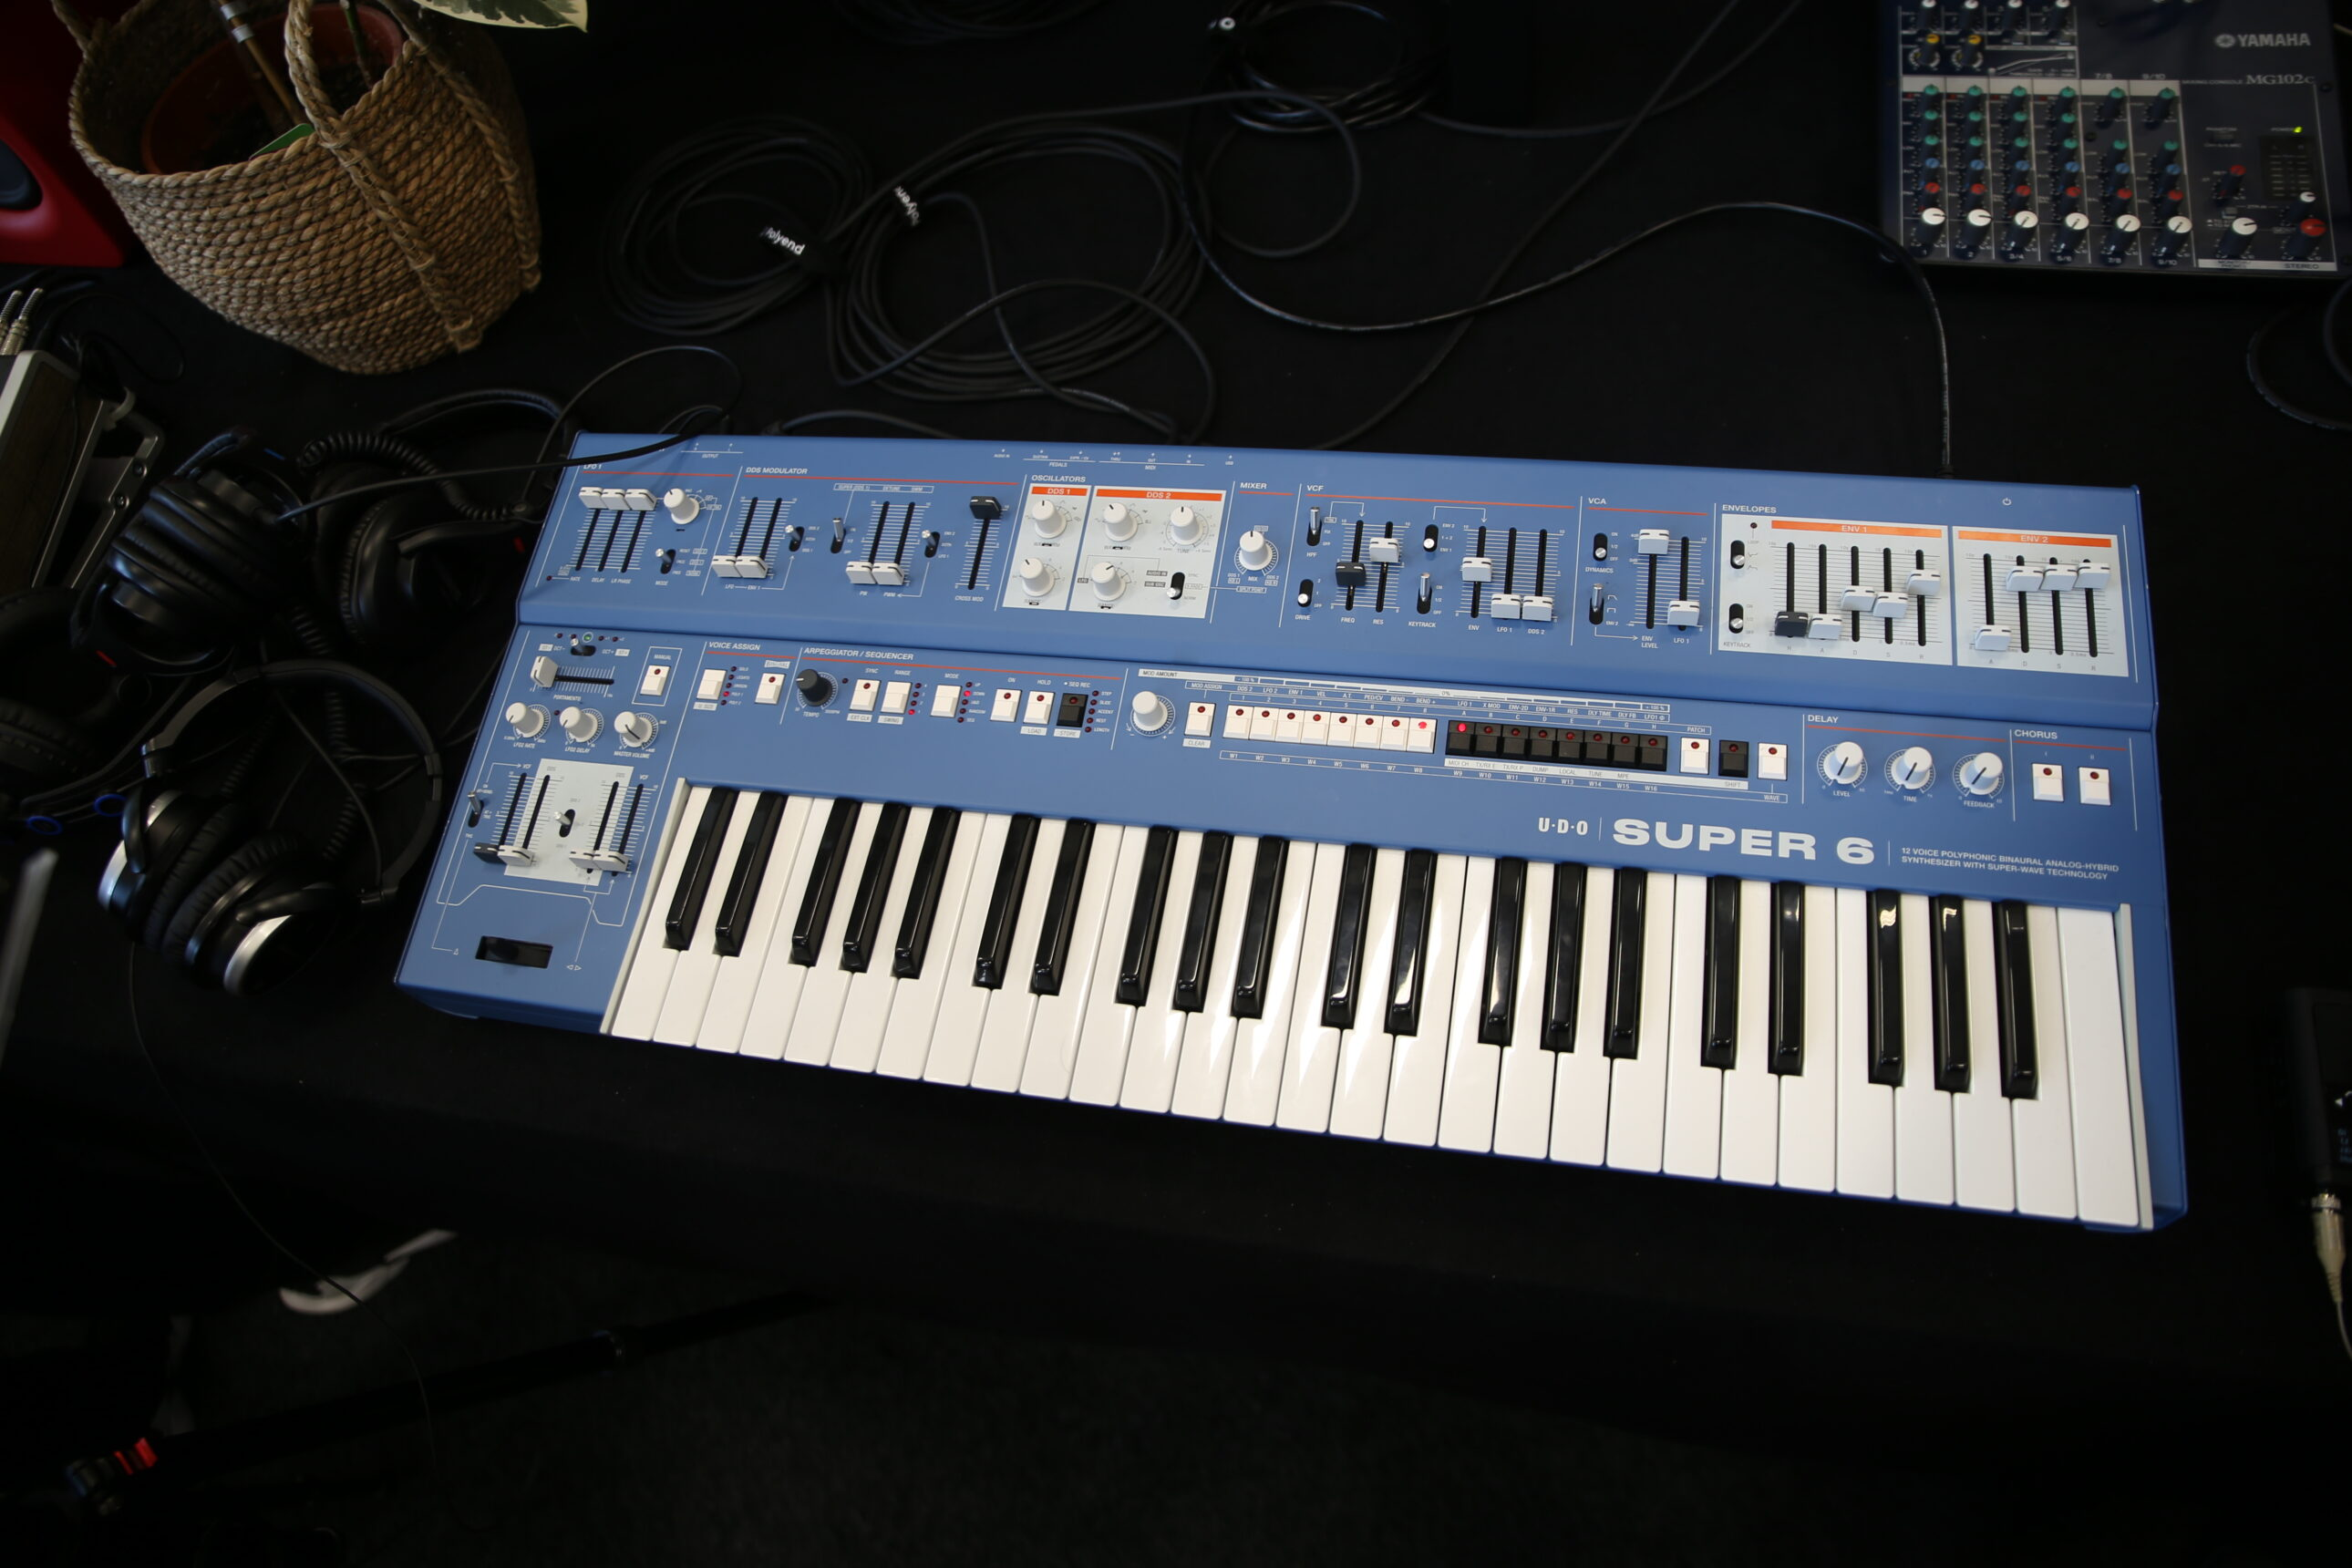 UDO Super 6 Synthesizer